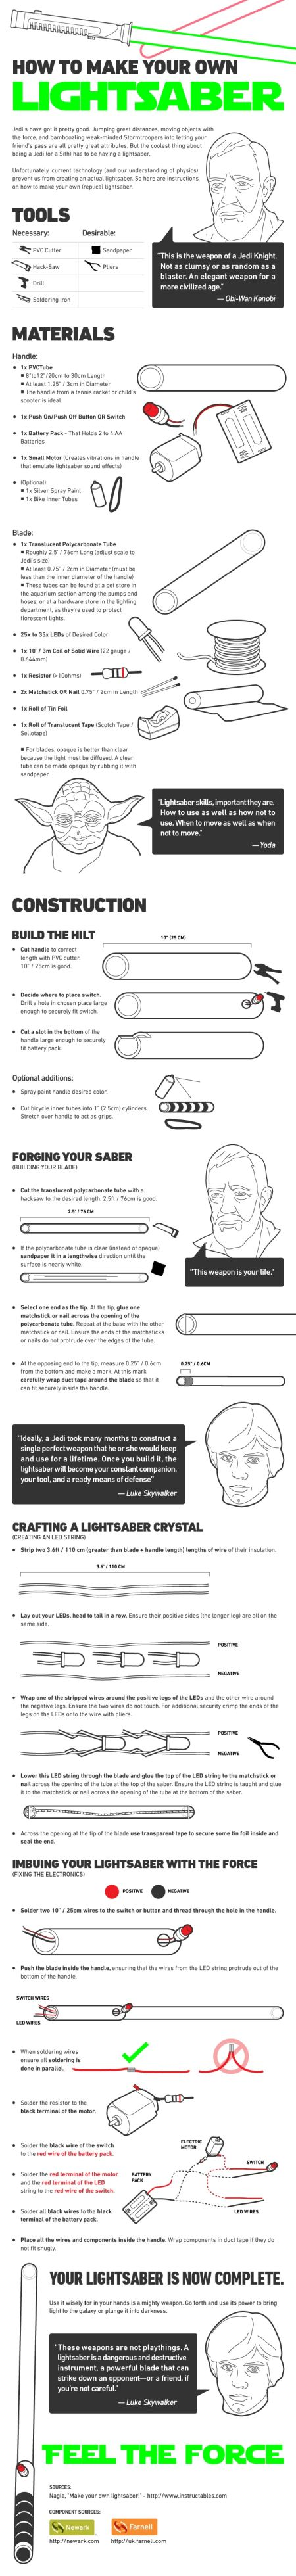 How to make your own light saber